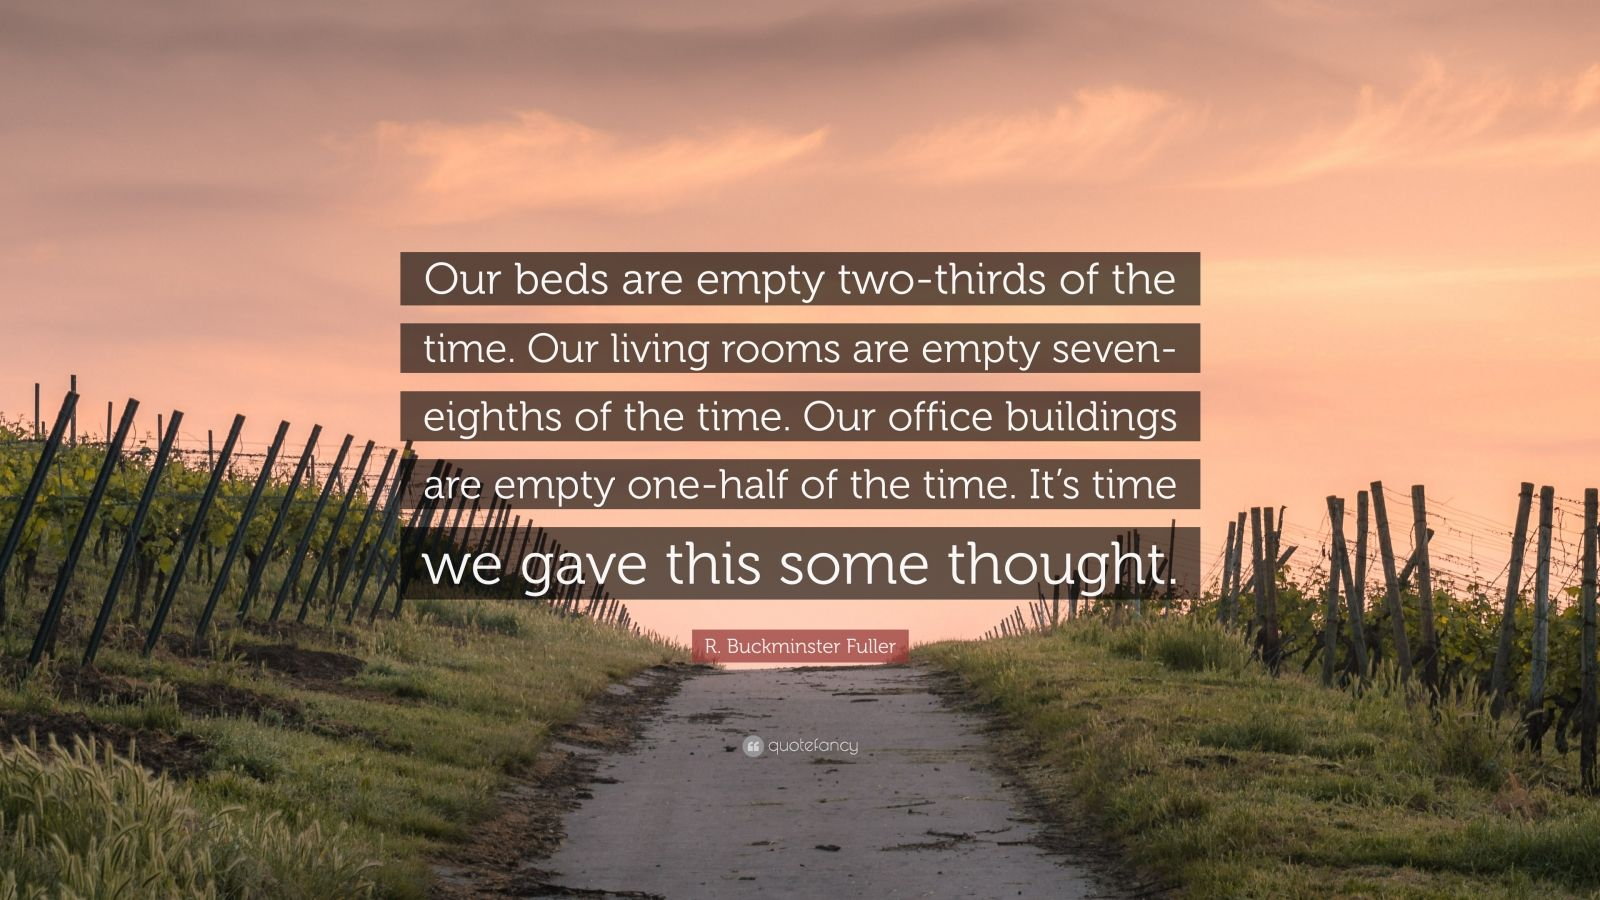 "R. Buckminster Fuller Quote: ""Our beds are empty two-thirds of the time. Our living rooms are empty seven-eighths of the time. Our office buildings are empty one-half of the time. It's time we gave this some thought."""